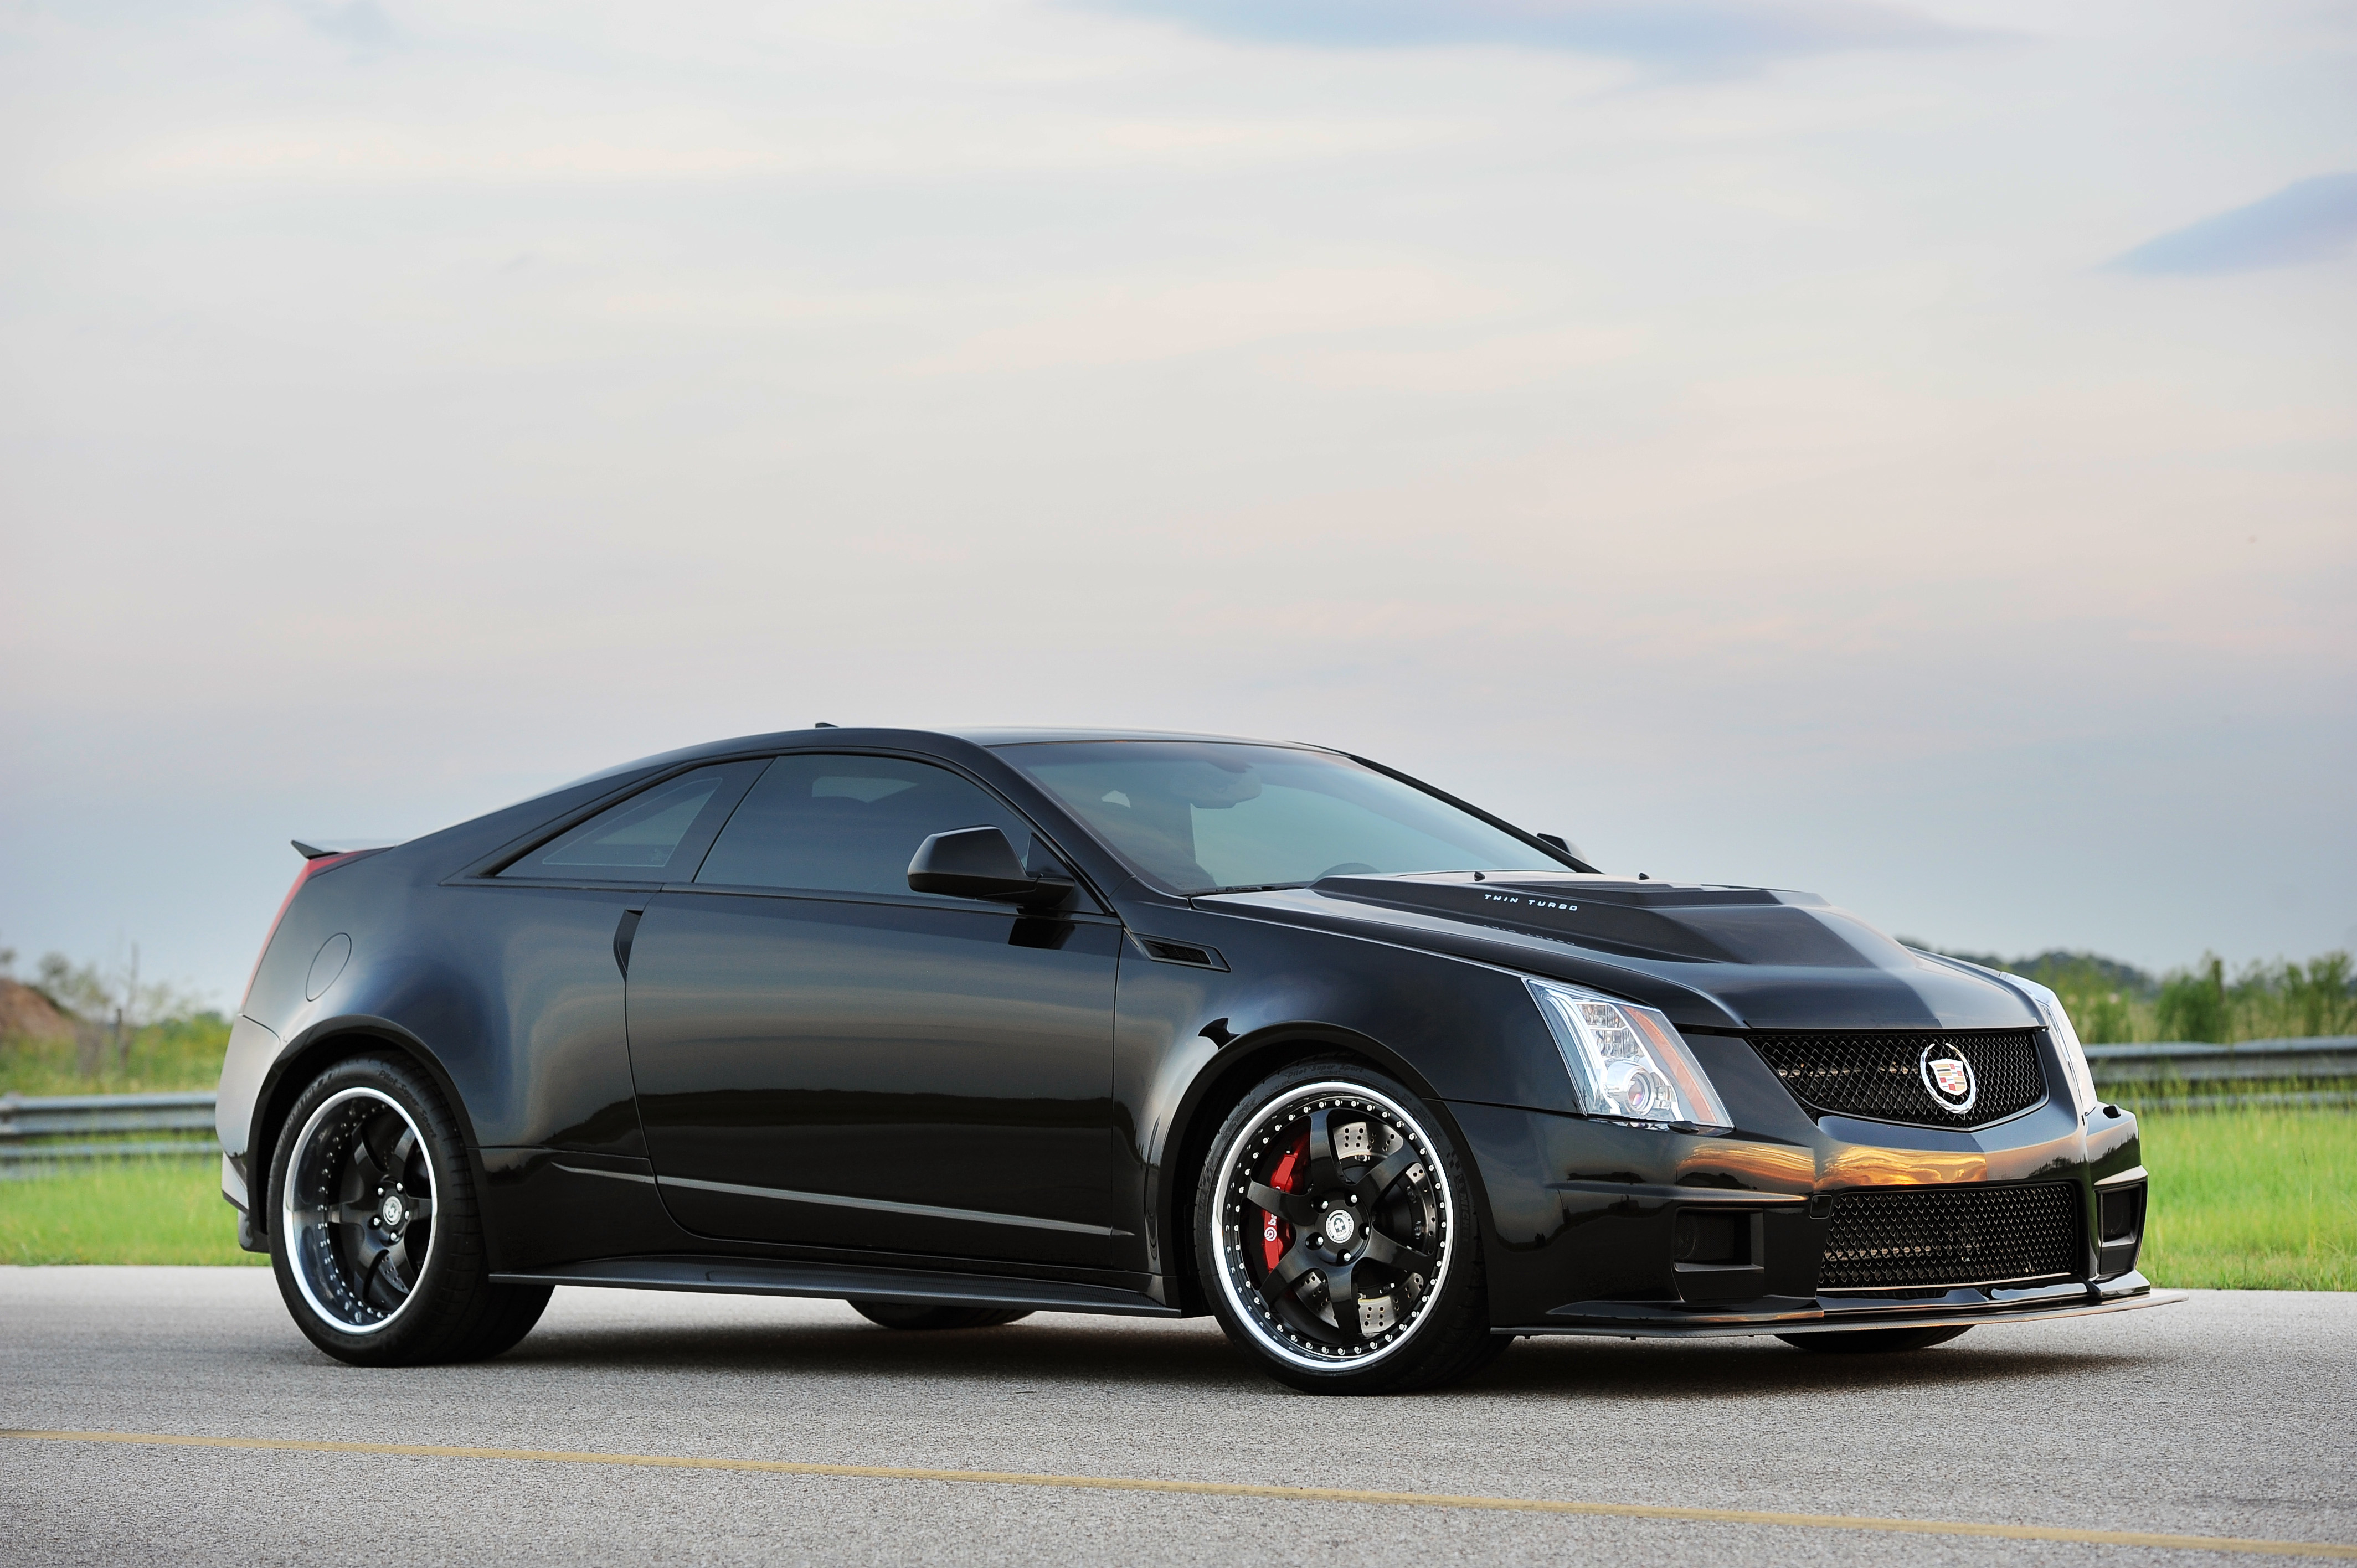 Hennessey Cadillac Cts Vr1200 Twin Turbo Coupe Cadillac